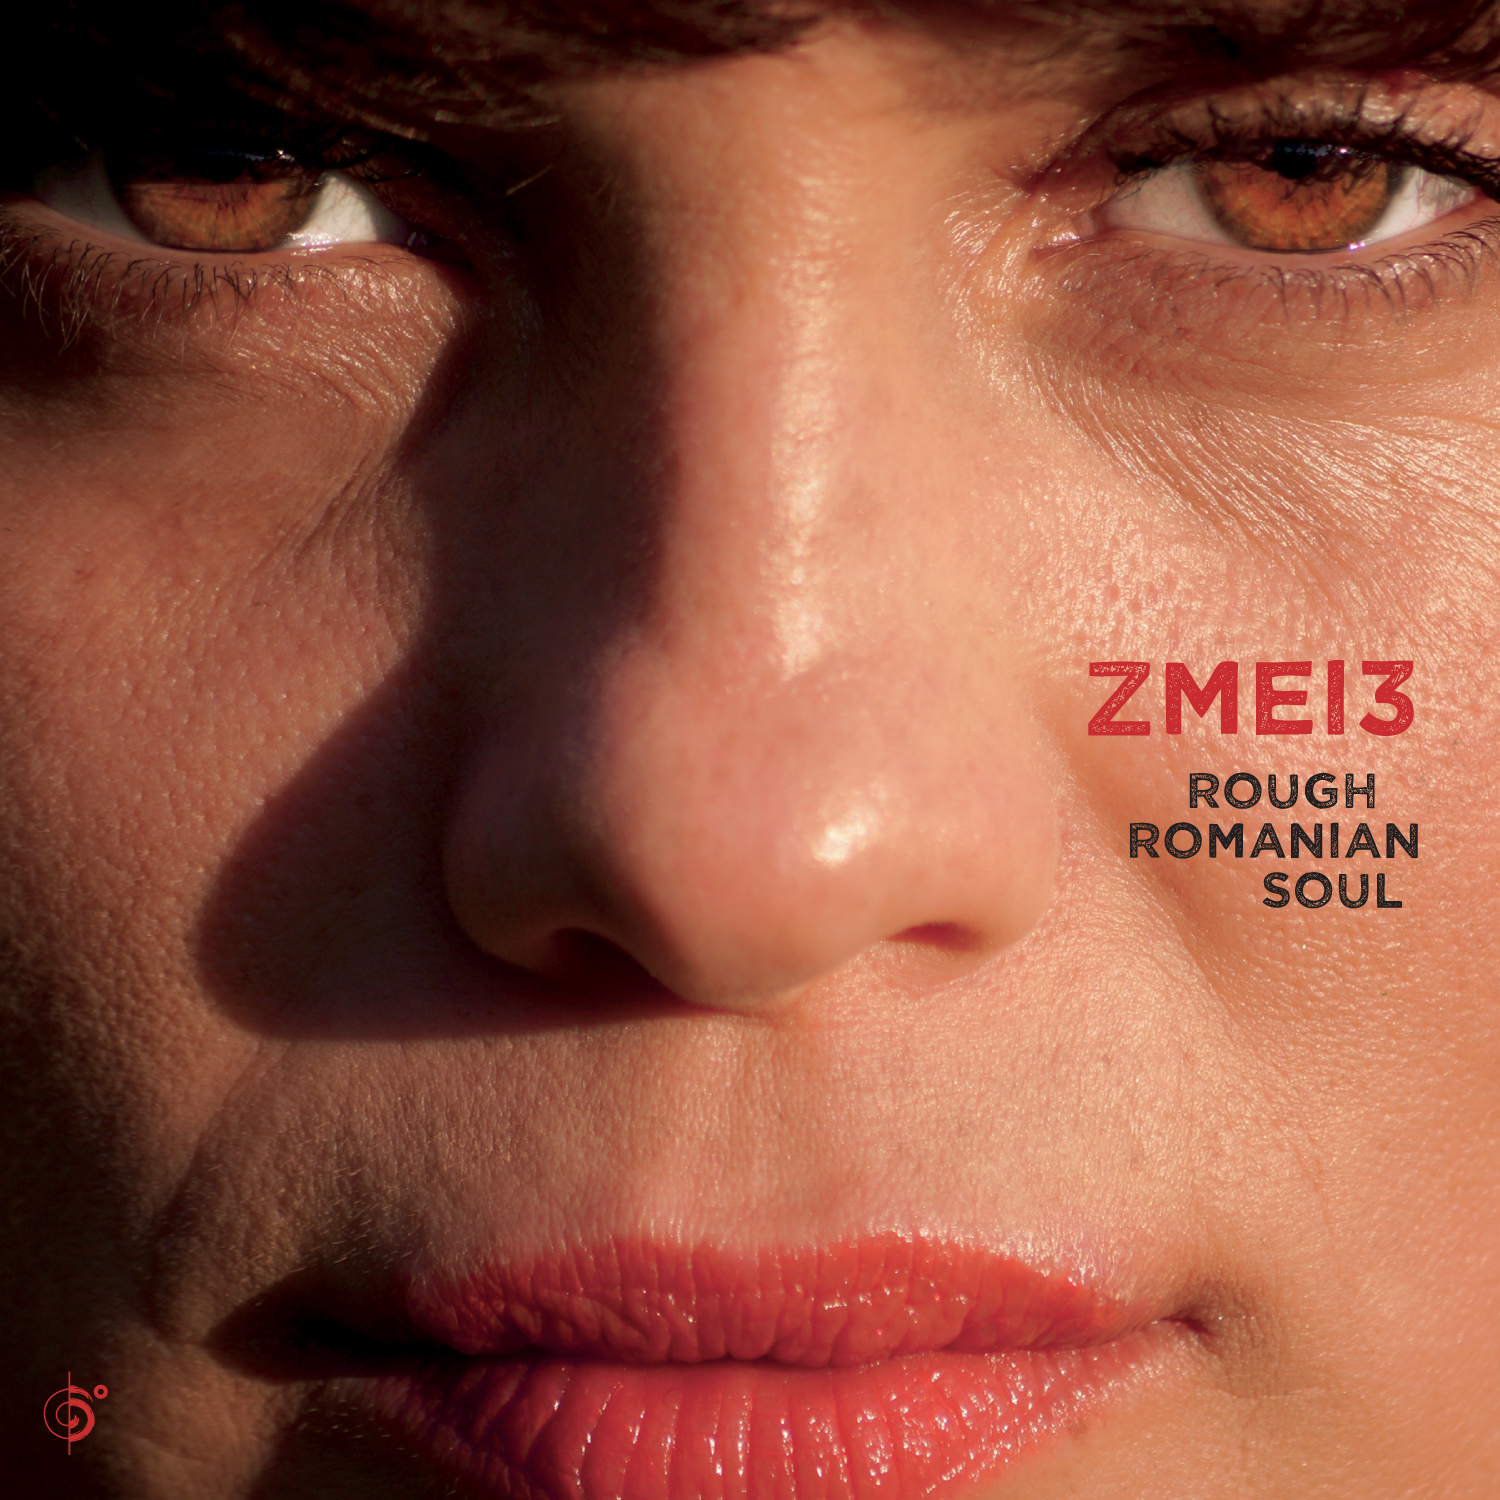 Zmei3 – Rough Romanian Soul